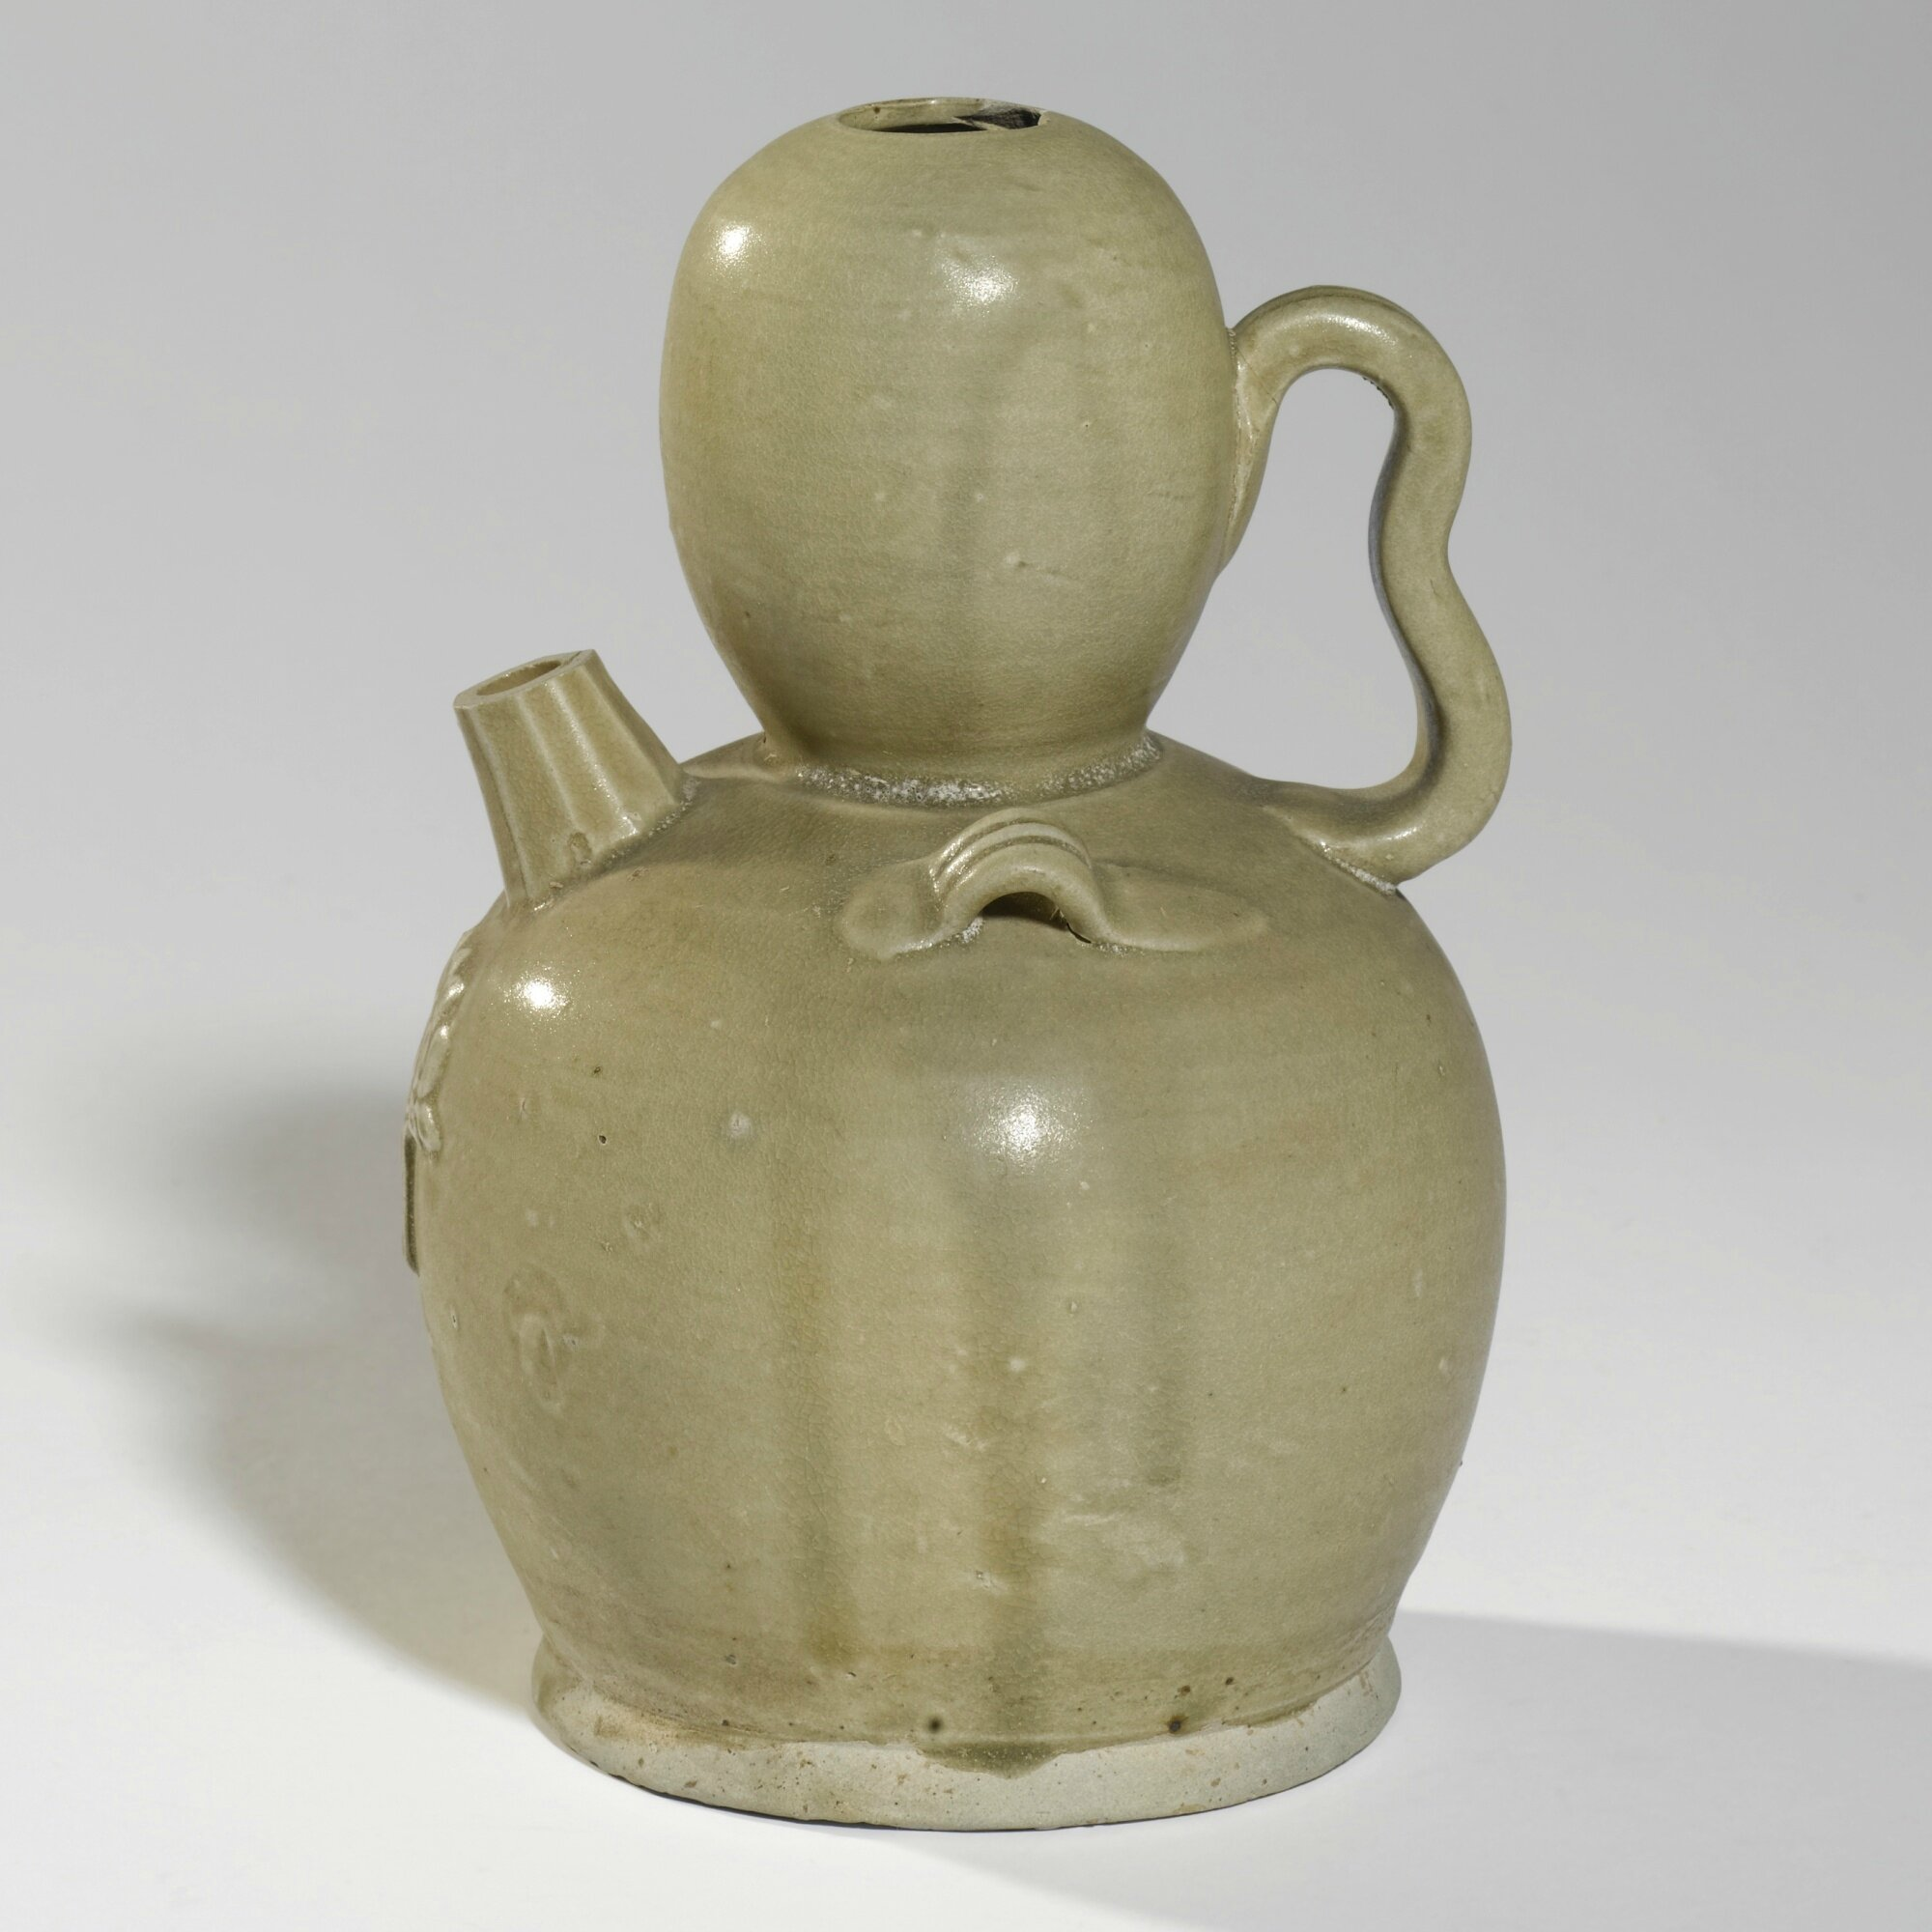 'Changsha'-type pottery ewer, Tang dynasty (618-907)